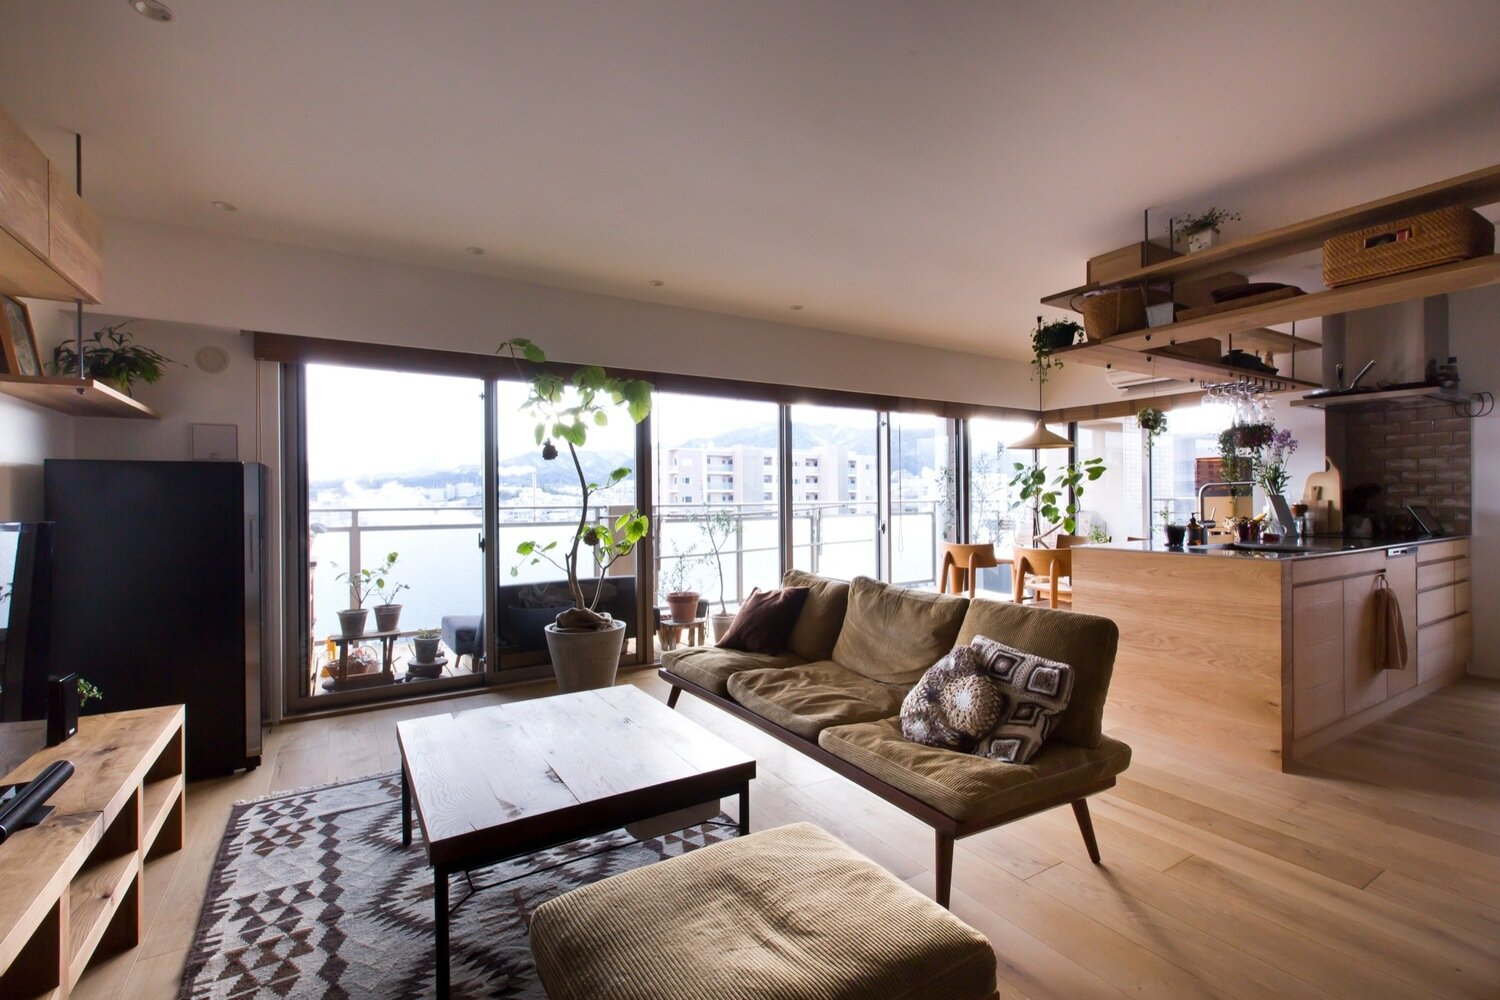 Nionohama Apartment House Renovation - ALTS Design Office - Japan - Living Room 2 - Humble Homes